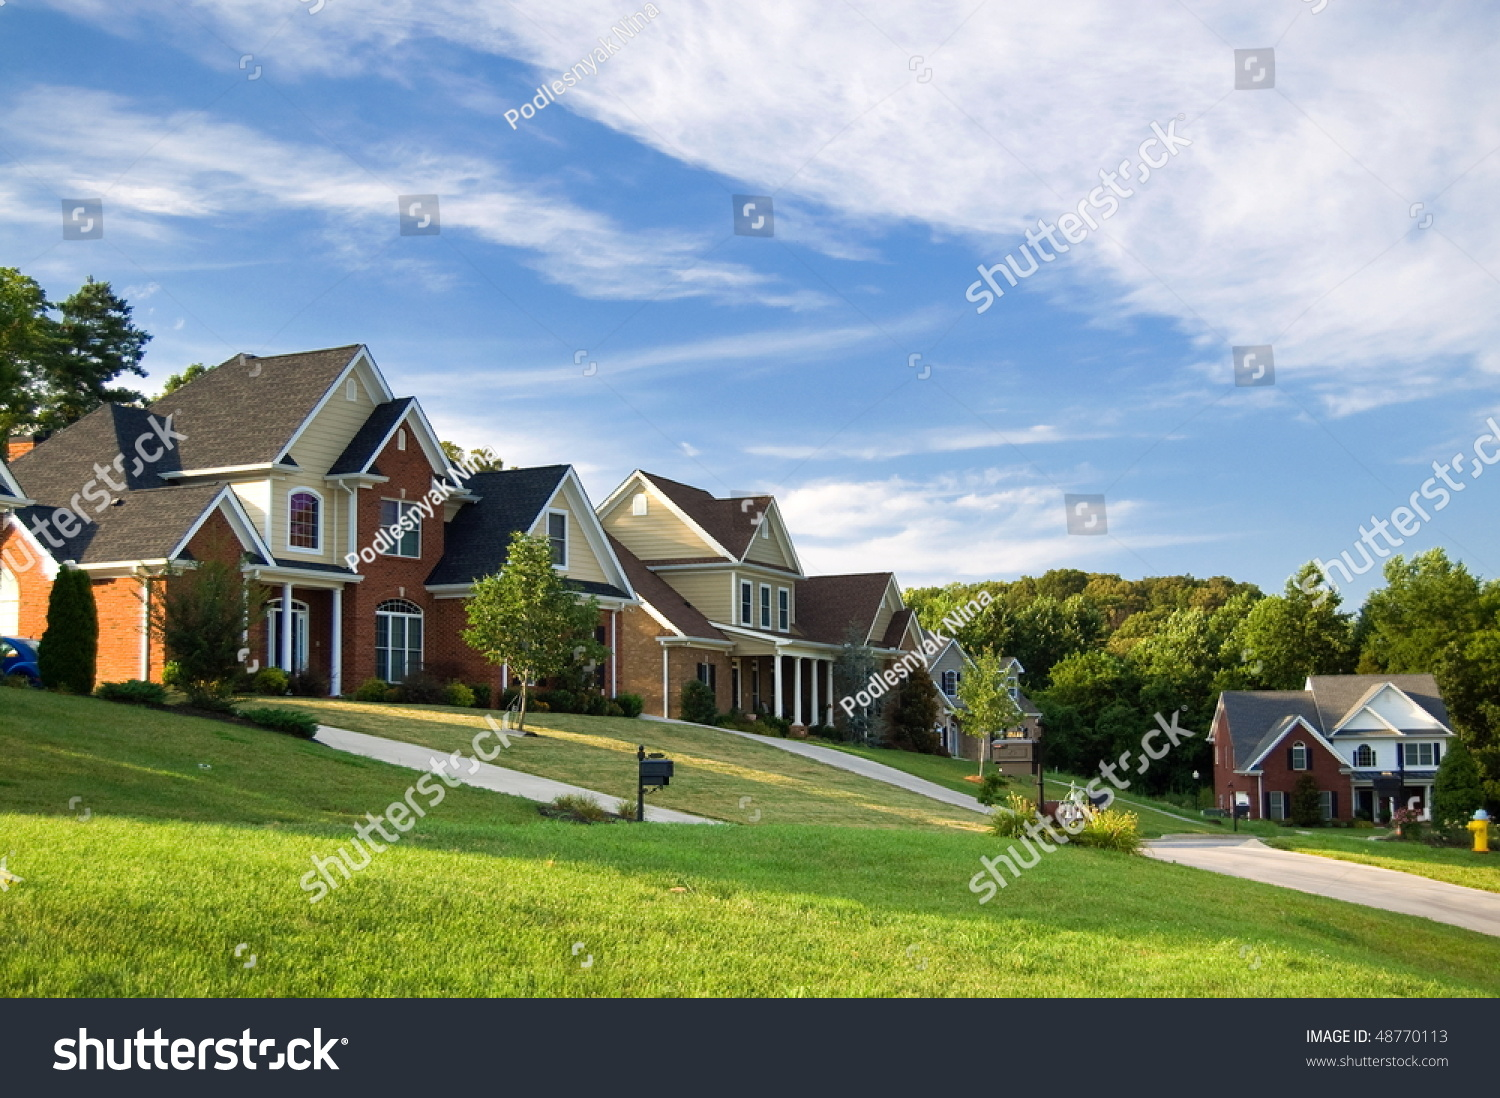 American street with beautiful houses stock photo 48770113 for Beautiful homes in america